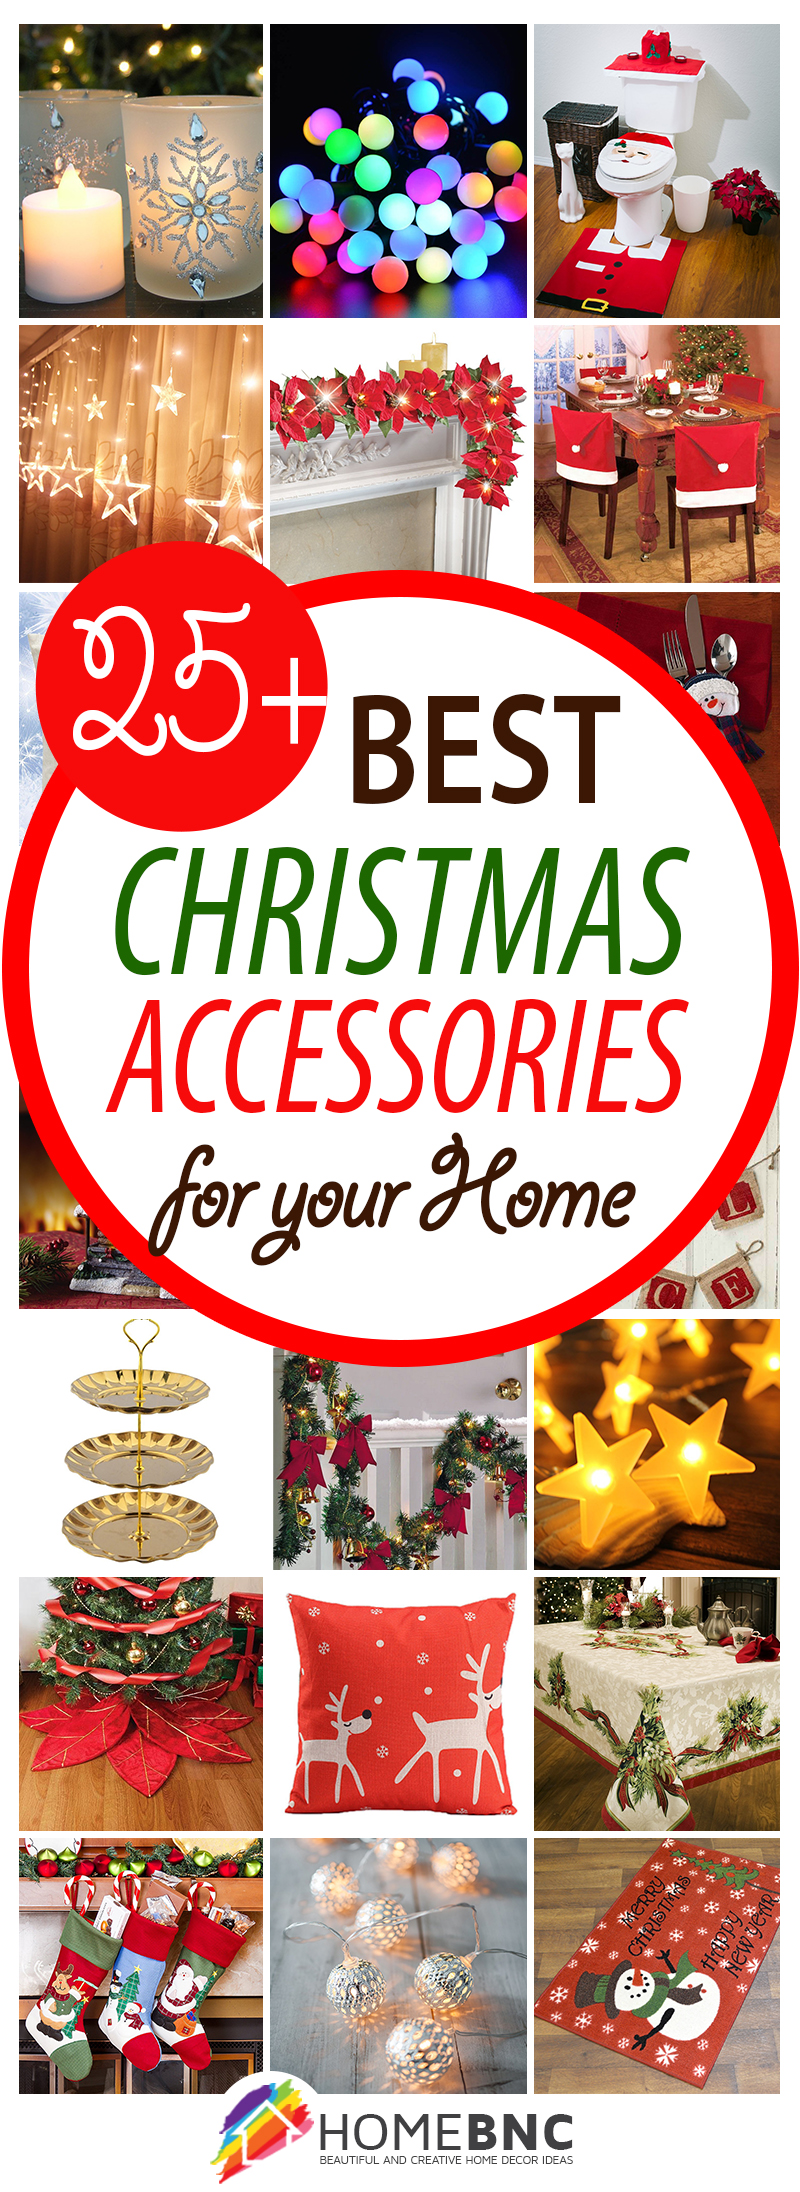 Christmas Accessory Ideas